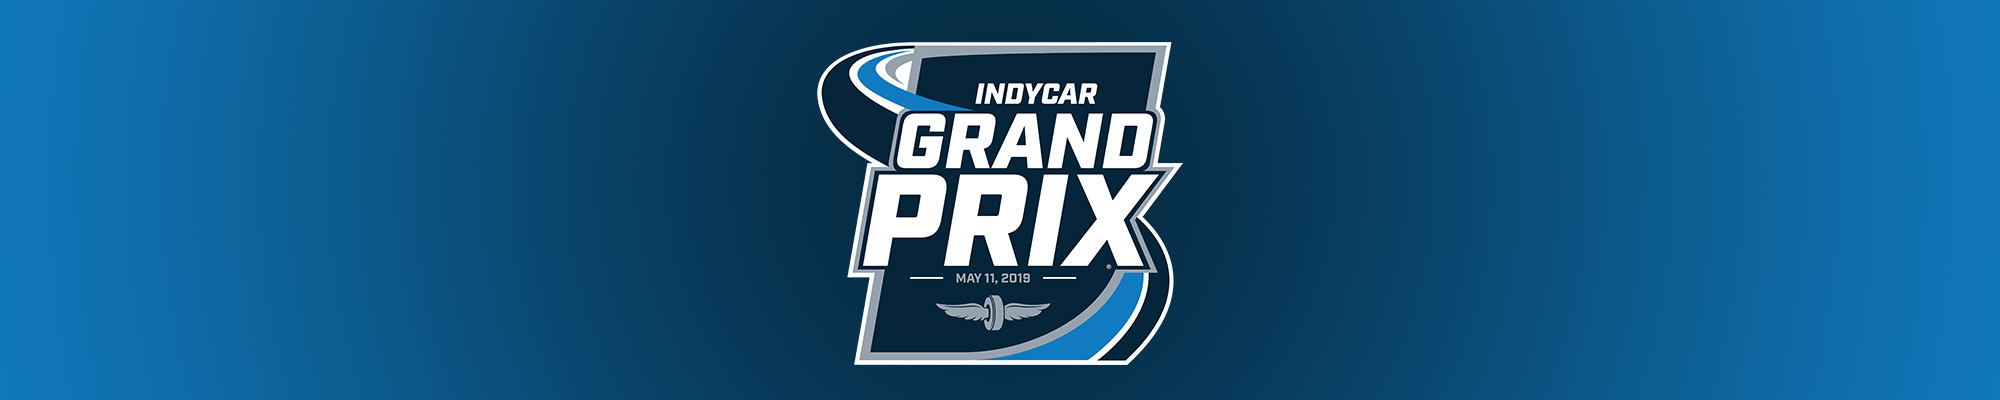 header-indycar-grand-prix-2019.jpg